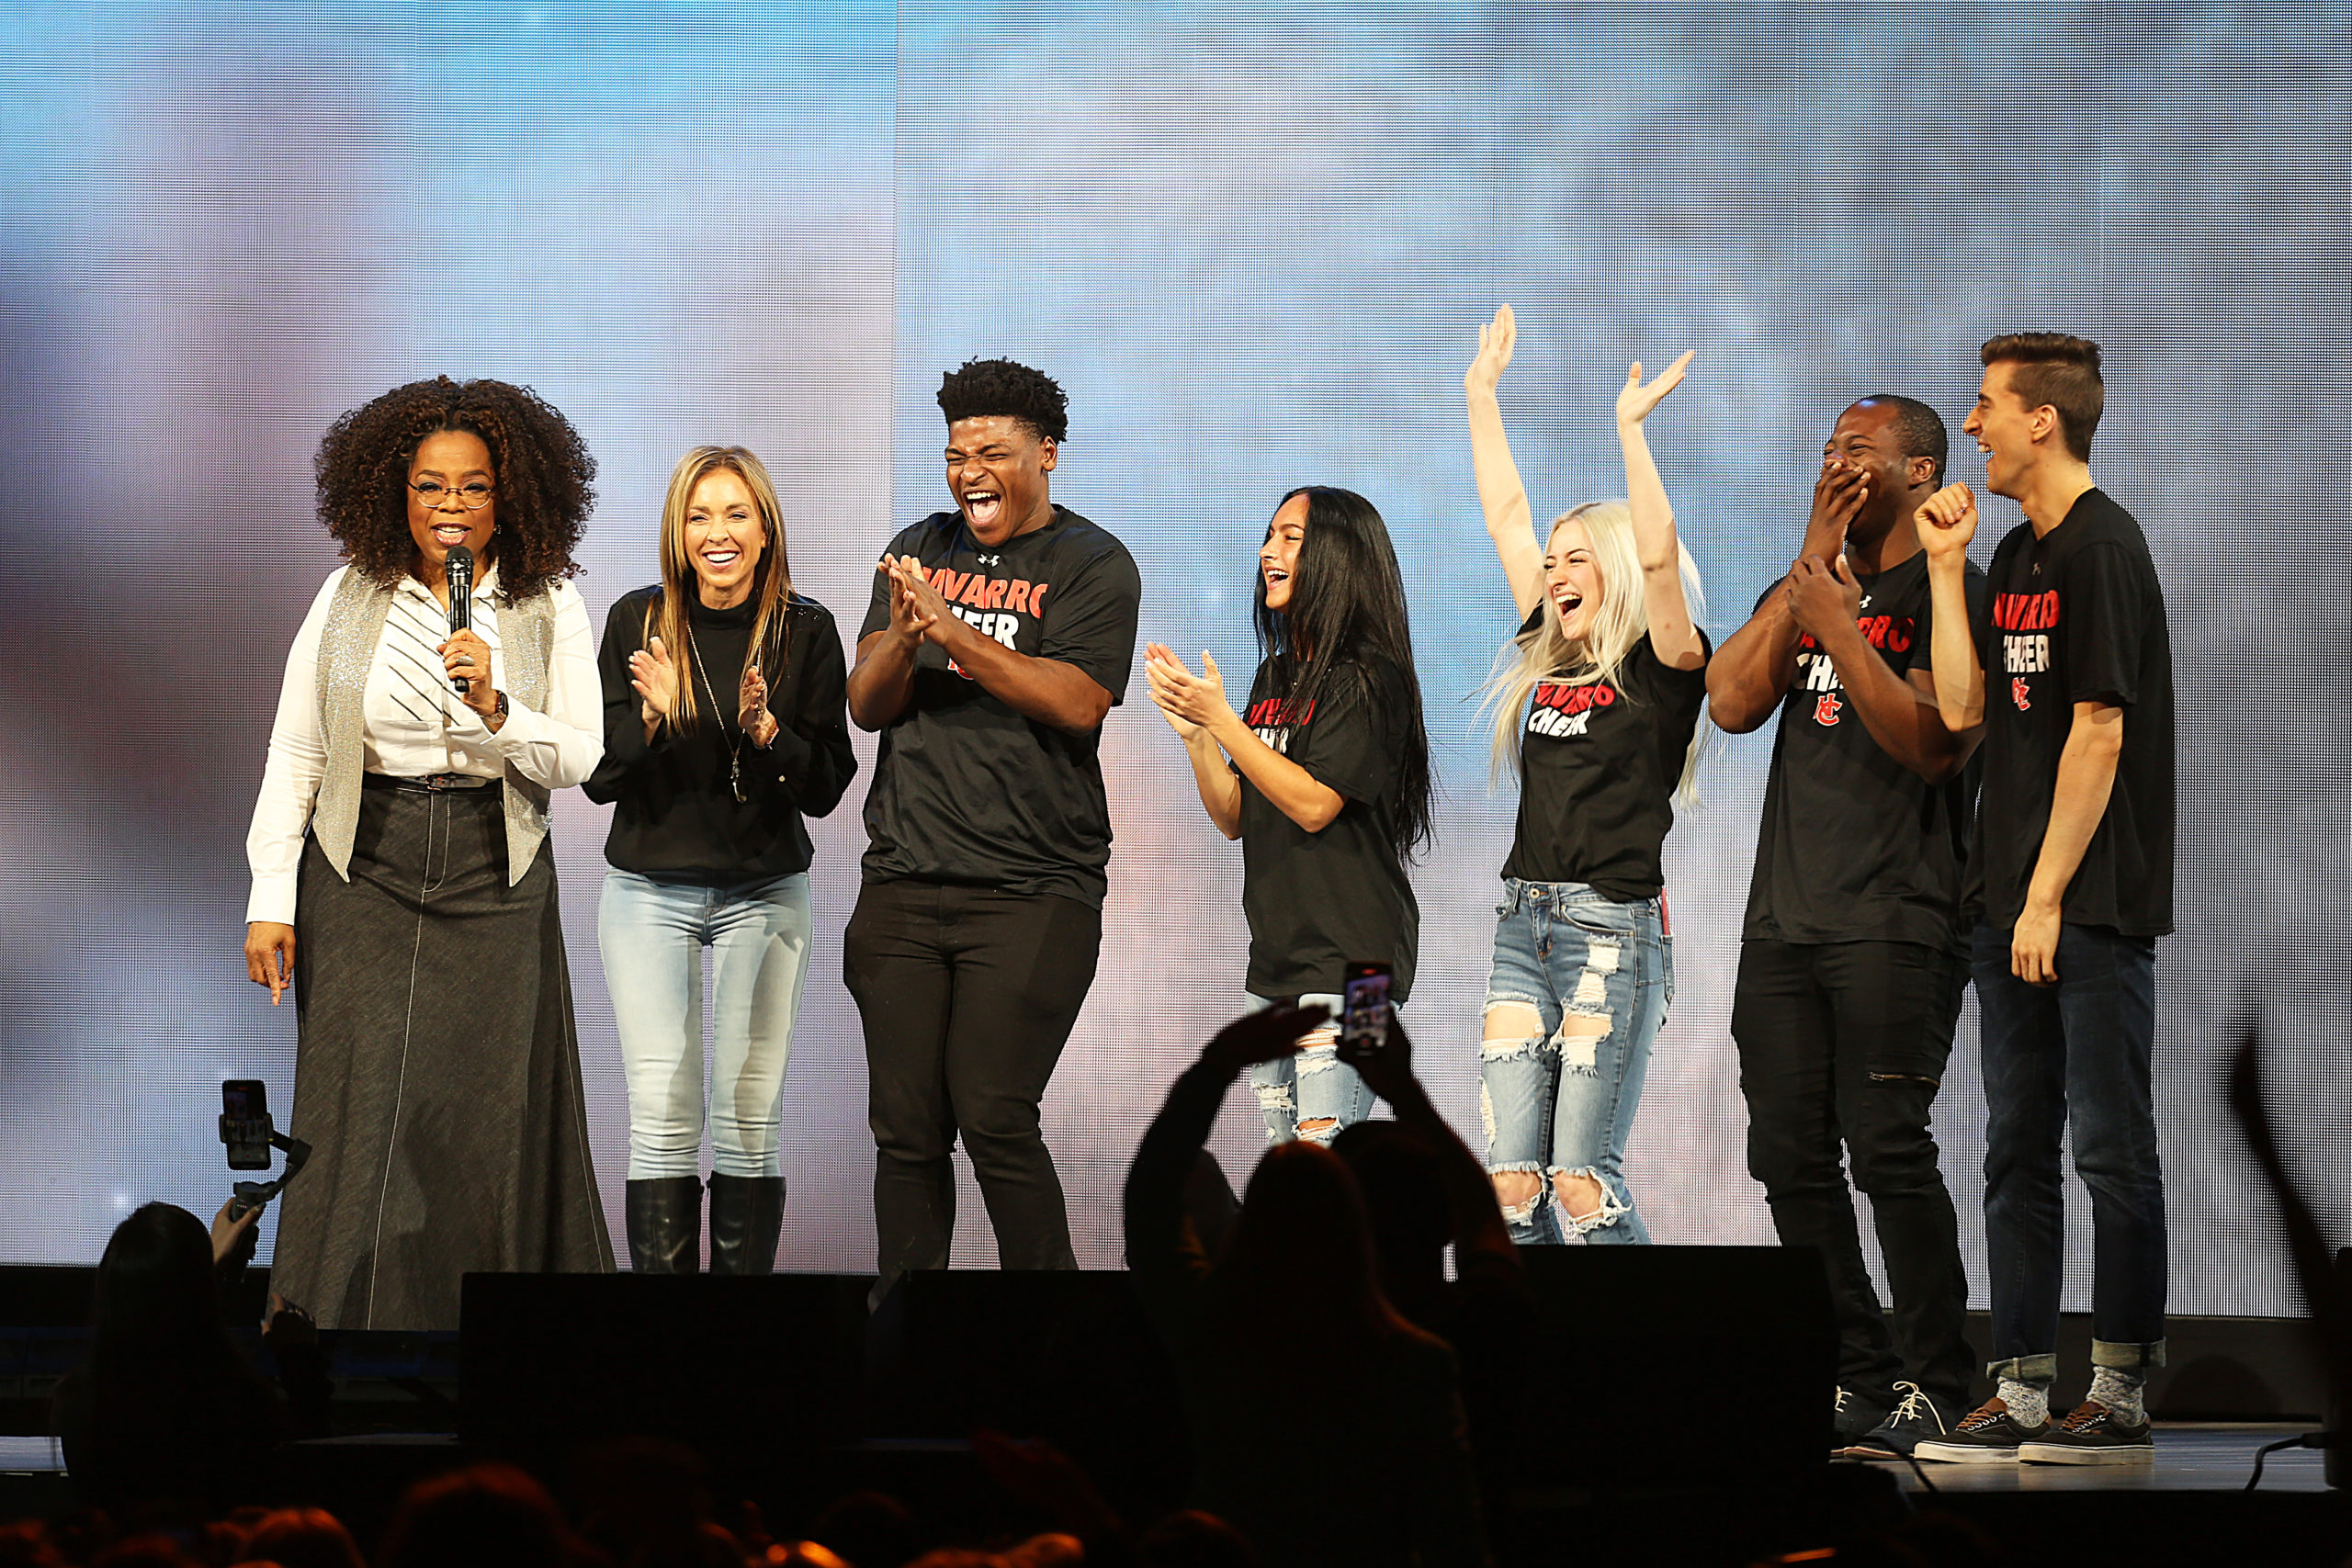 """DALLAS, TX - FEBRUARY 15: Oprah Winfrey speaks with the cast of Netflix's """"Cheer"""", (L-R) Monica Aldama, Jerry Harris, Gabi Butler, Lexi Brumback, TT Barker and Dillon Brandt during Oprah's 2020 Vision: Your Life in Focus Tour presented by WW (Weight Watchers Reimagined) at American Airlines Center on February 15, 2020 in Dallas, Texas. (Photo by Omar Vega/Getty Images)"""